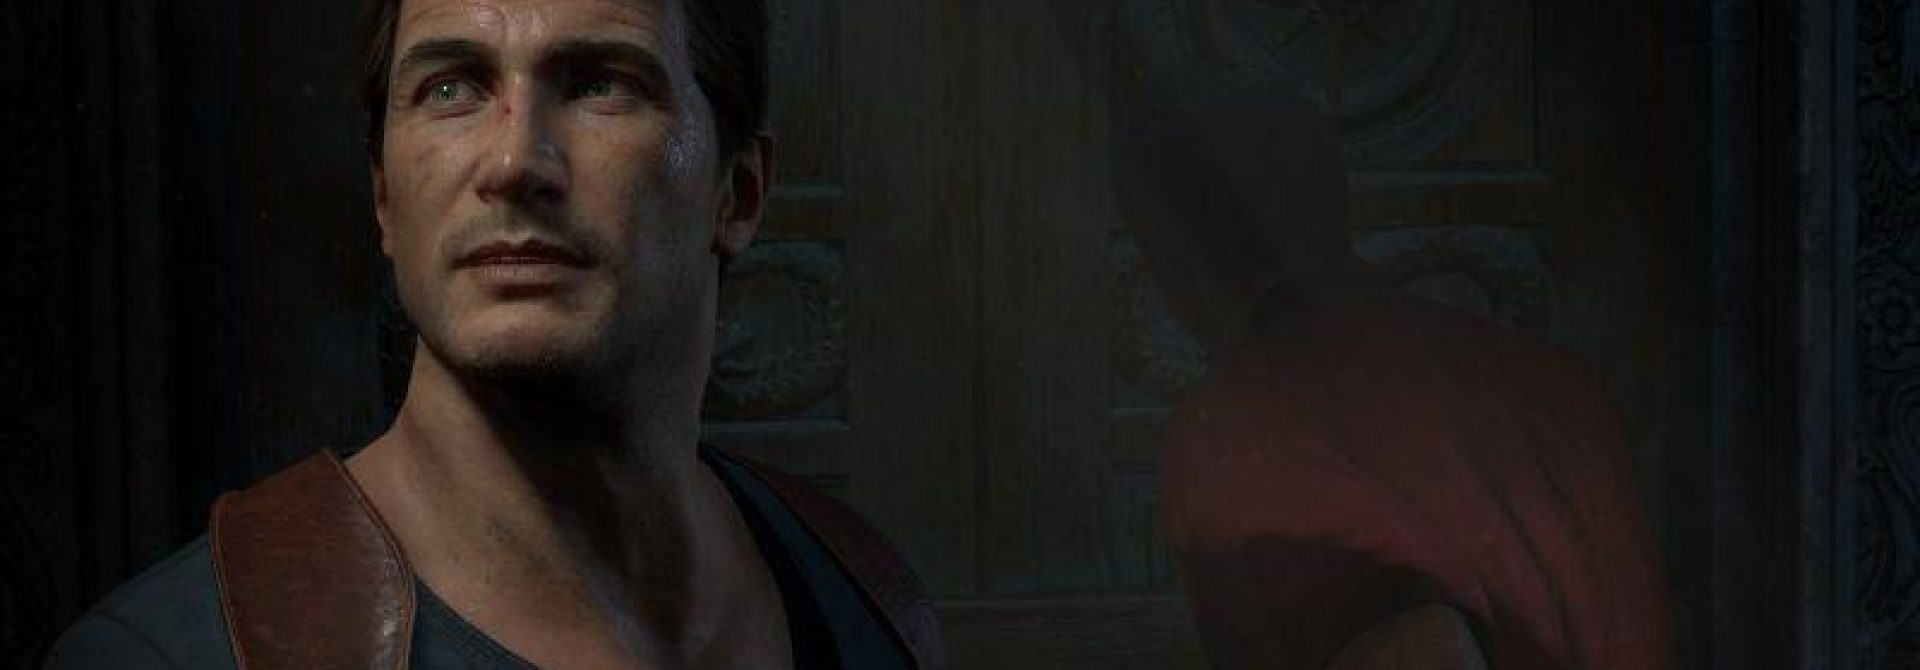 Uncharted Movie Faces Another Setback